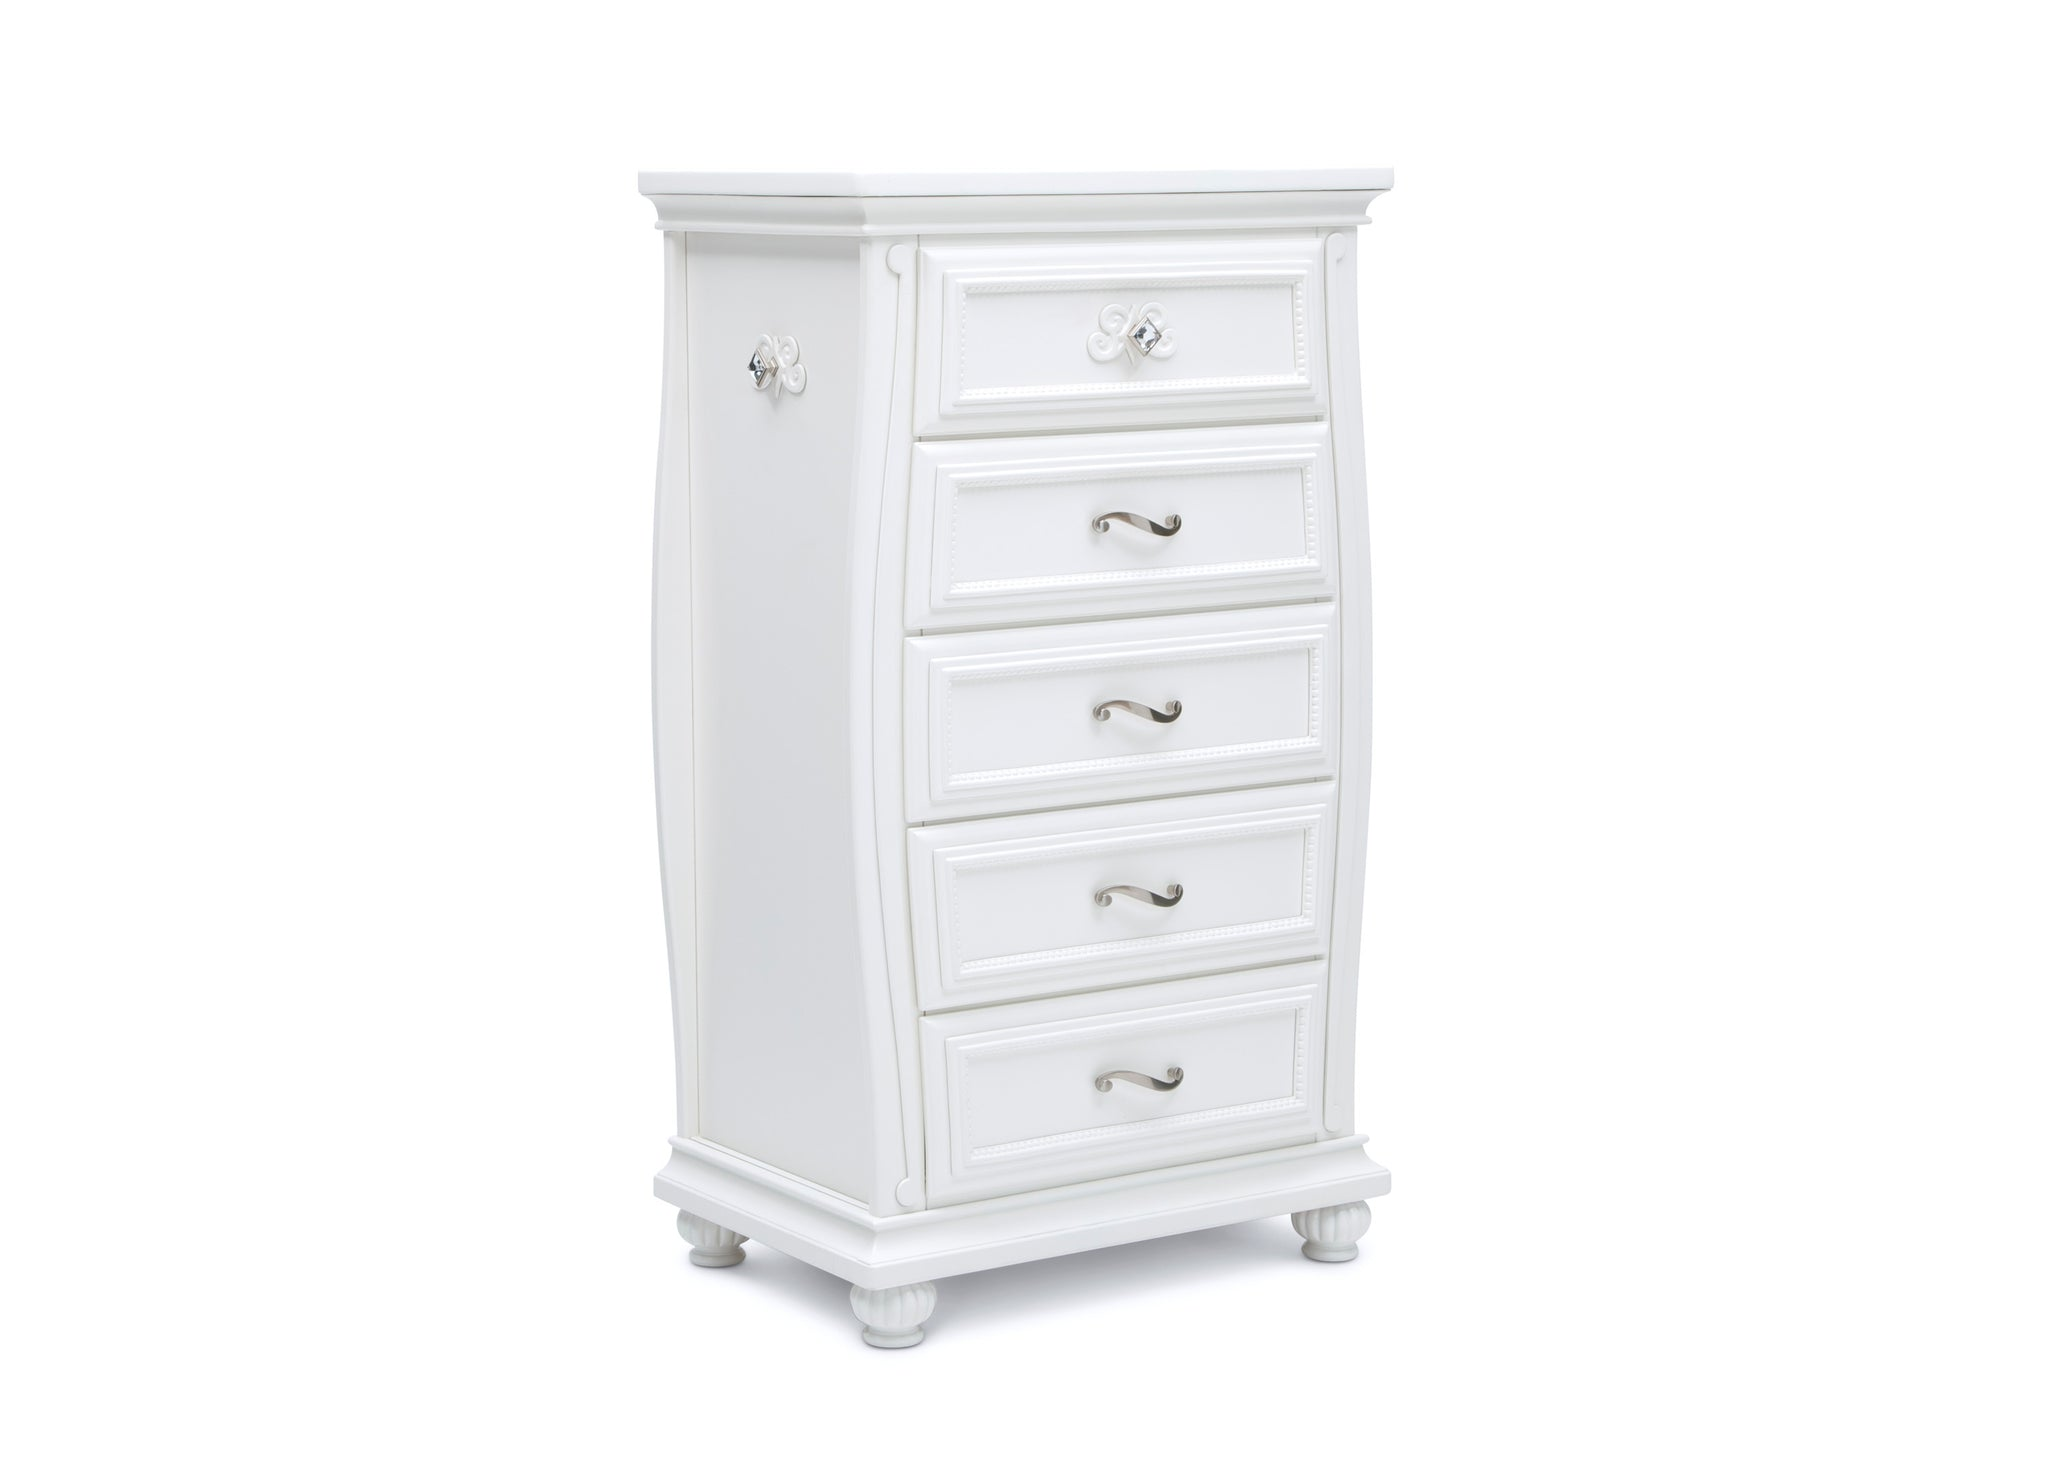 Simmons Kids Bianca White (130) Fairytale 5 Drawer Chest, Right Silo View